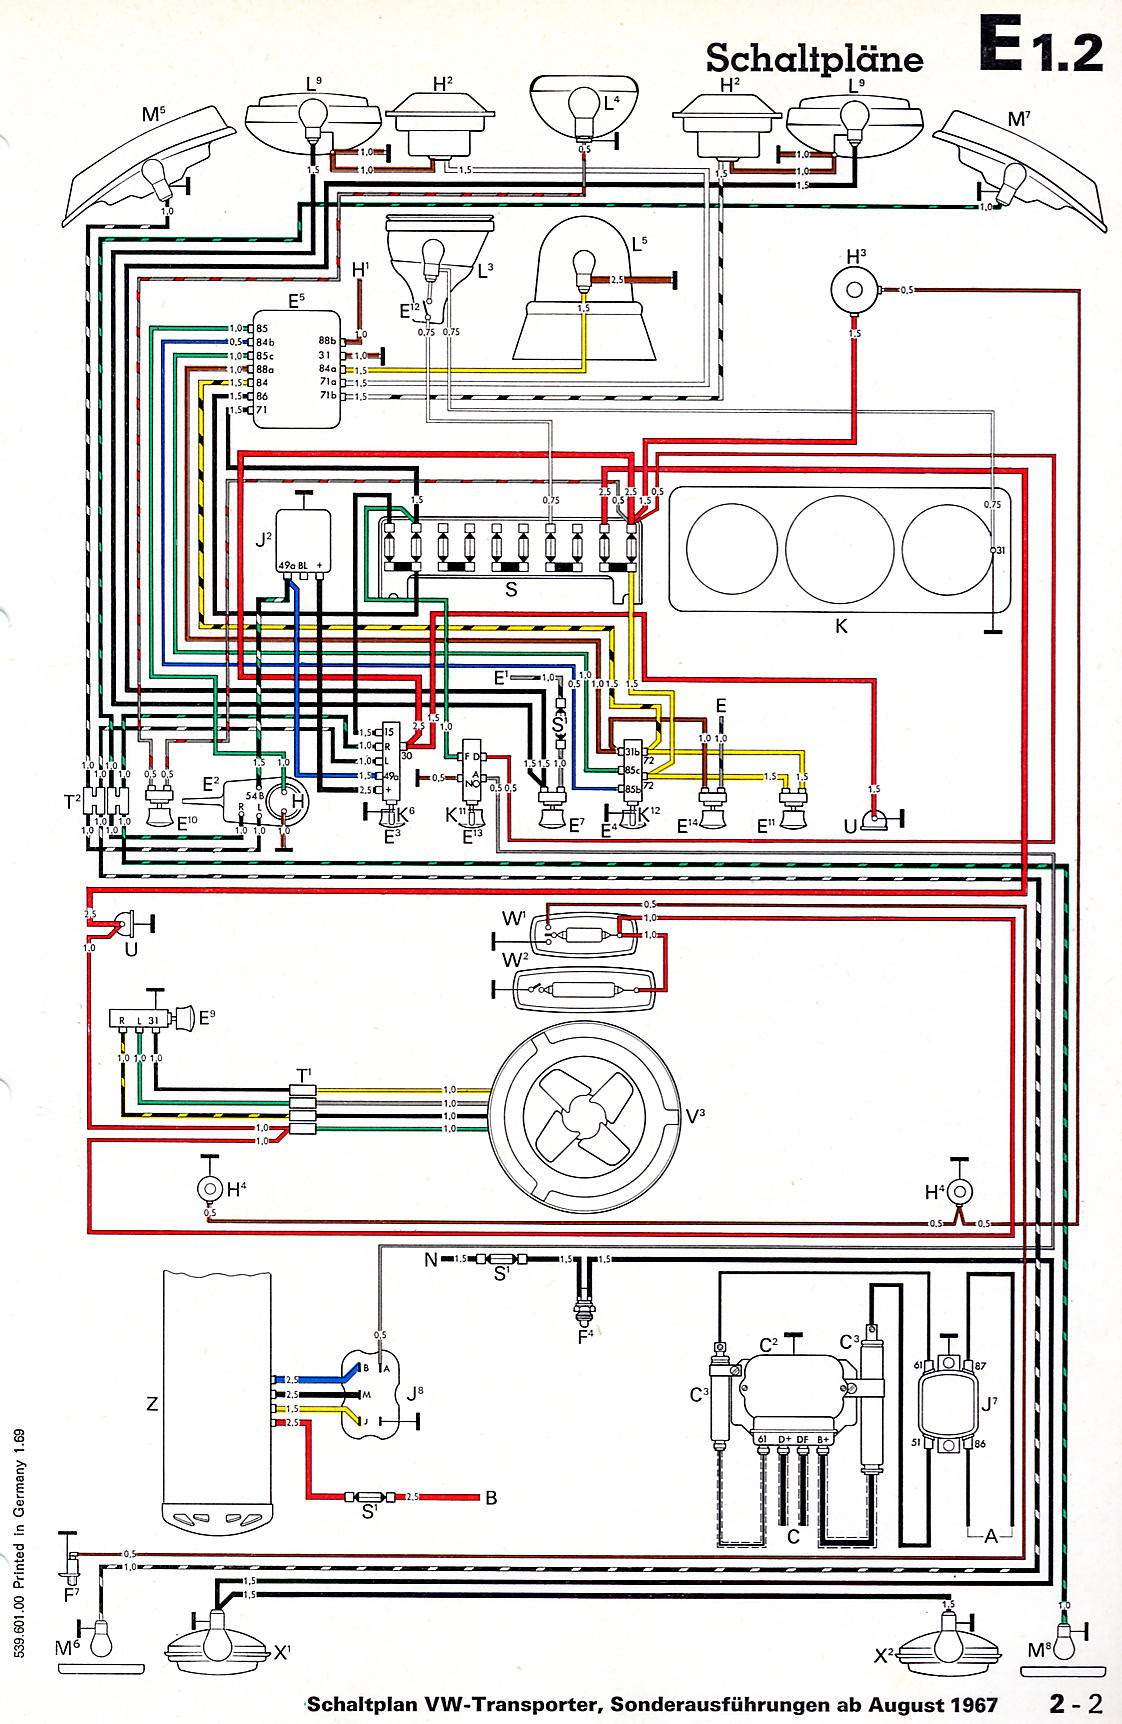 72 Volkswagen Beetle Wiring Diagram - Wiring Diagram NetworksWiring Diagram Networks - blogger